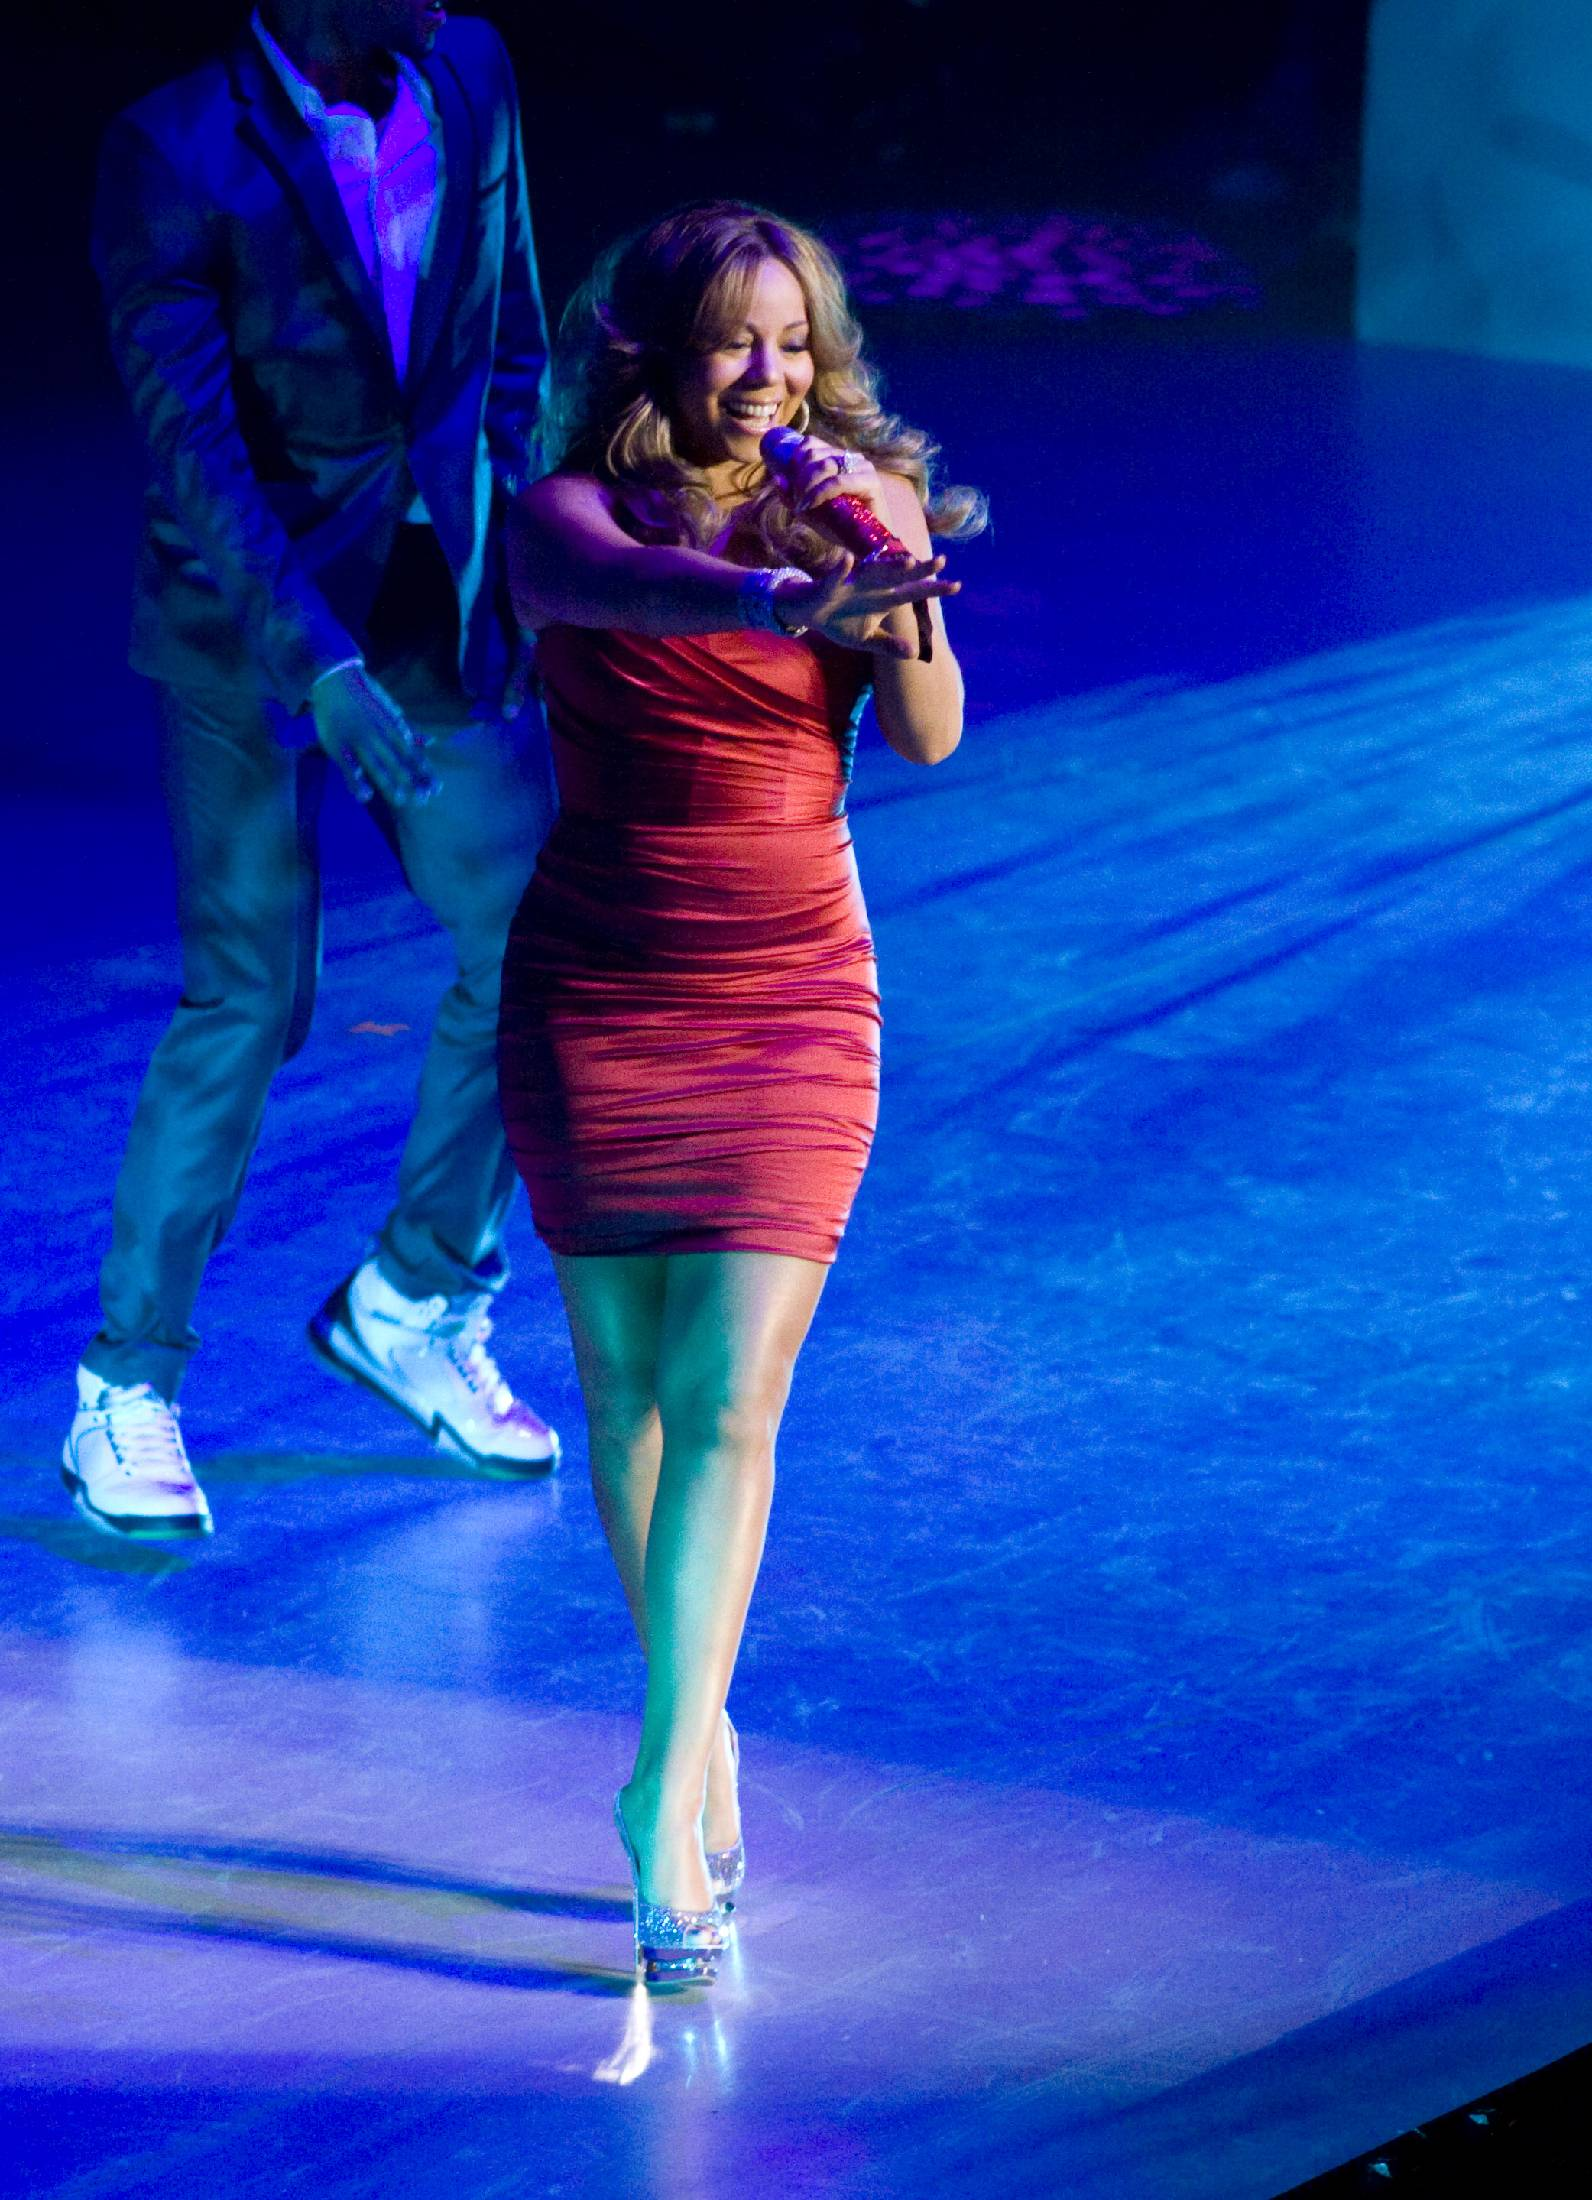 53291_Mariah_Carey_performs_at_Madison_Square_Garden_in_New_York_City-15_122_220lo.jpg